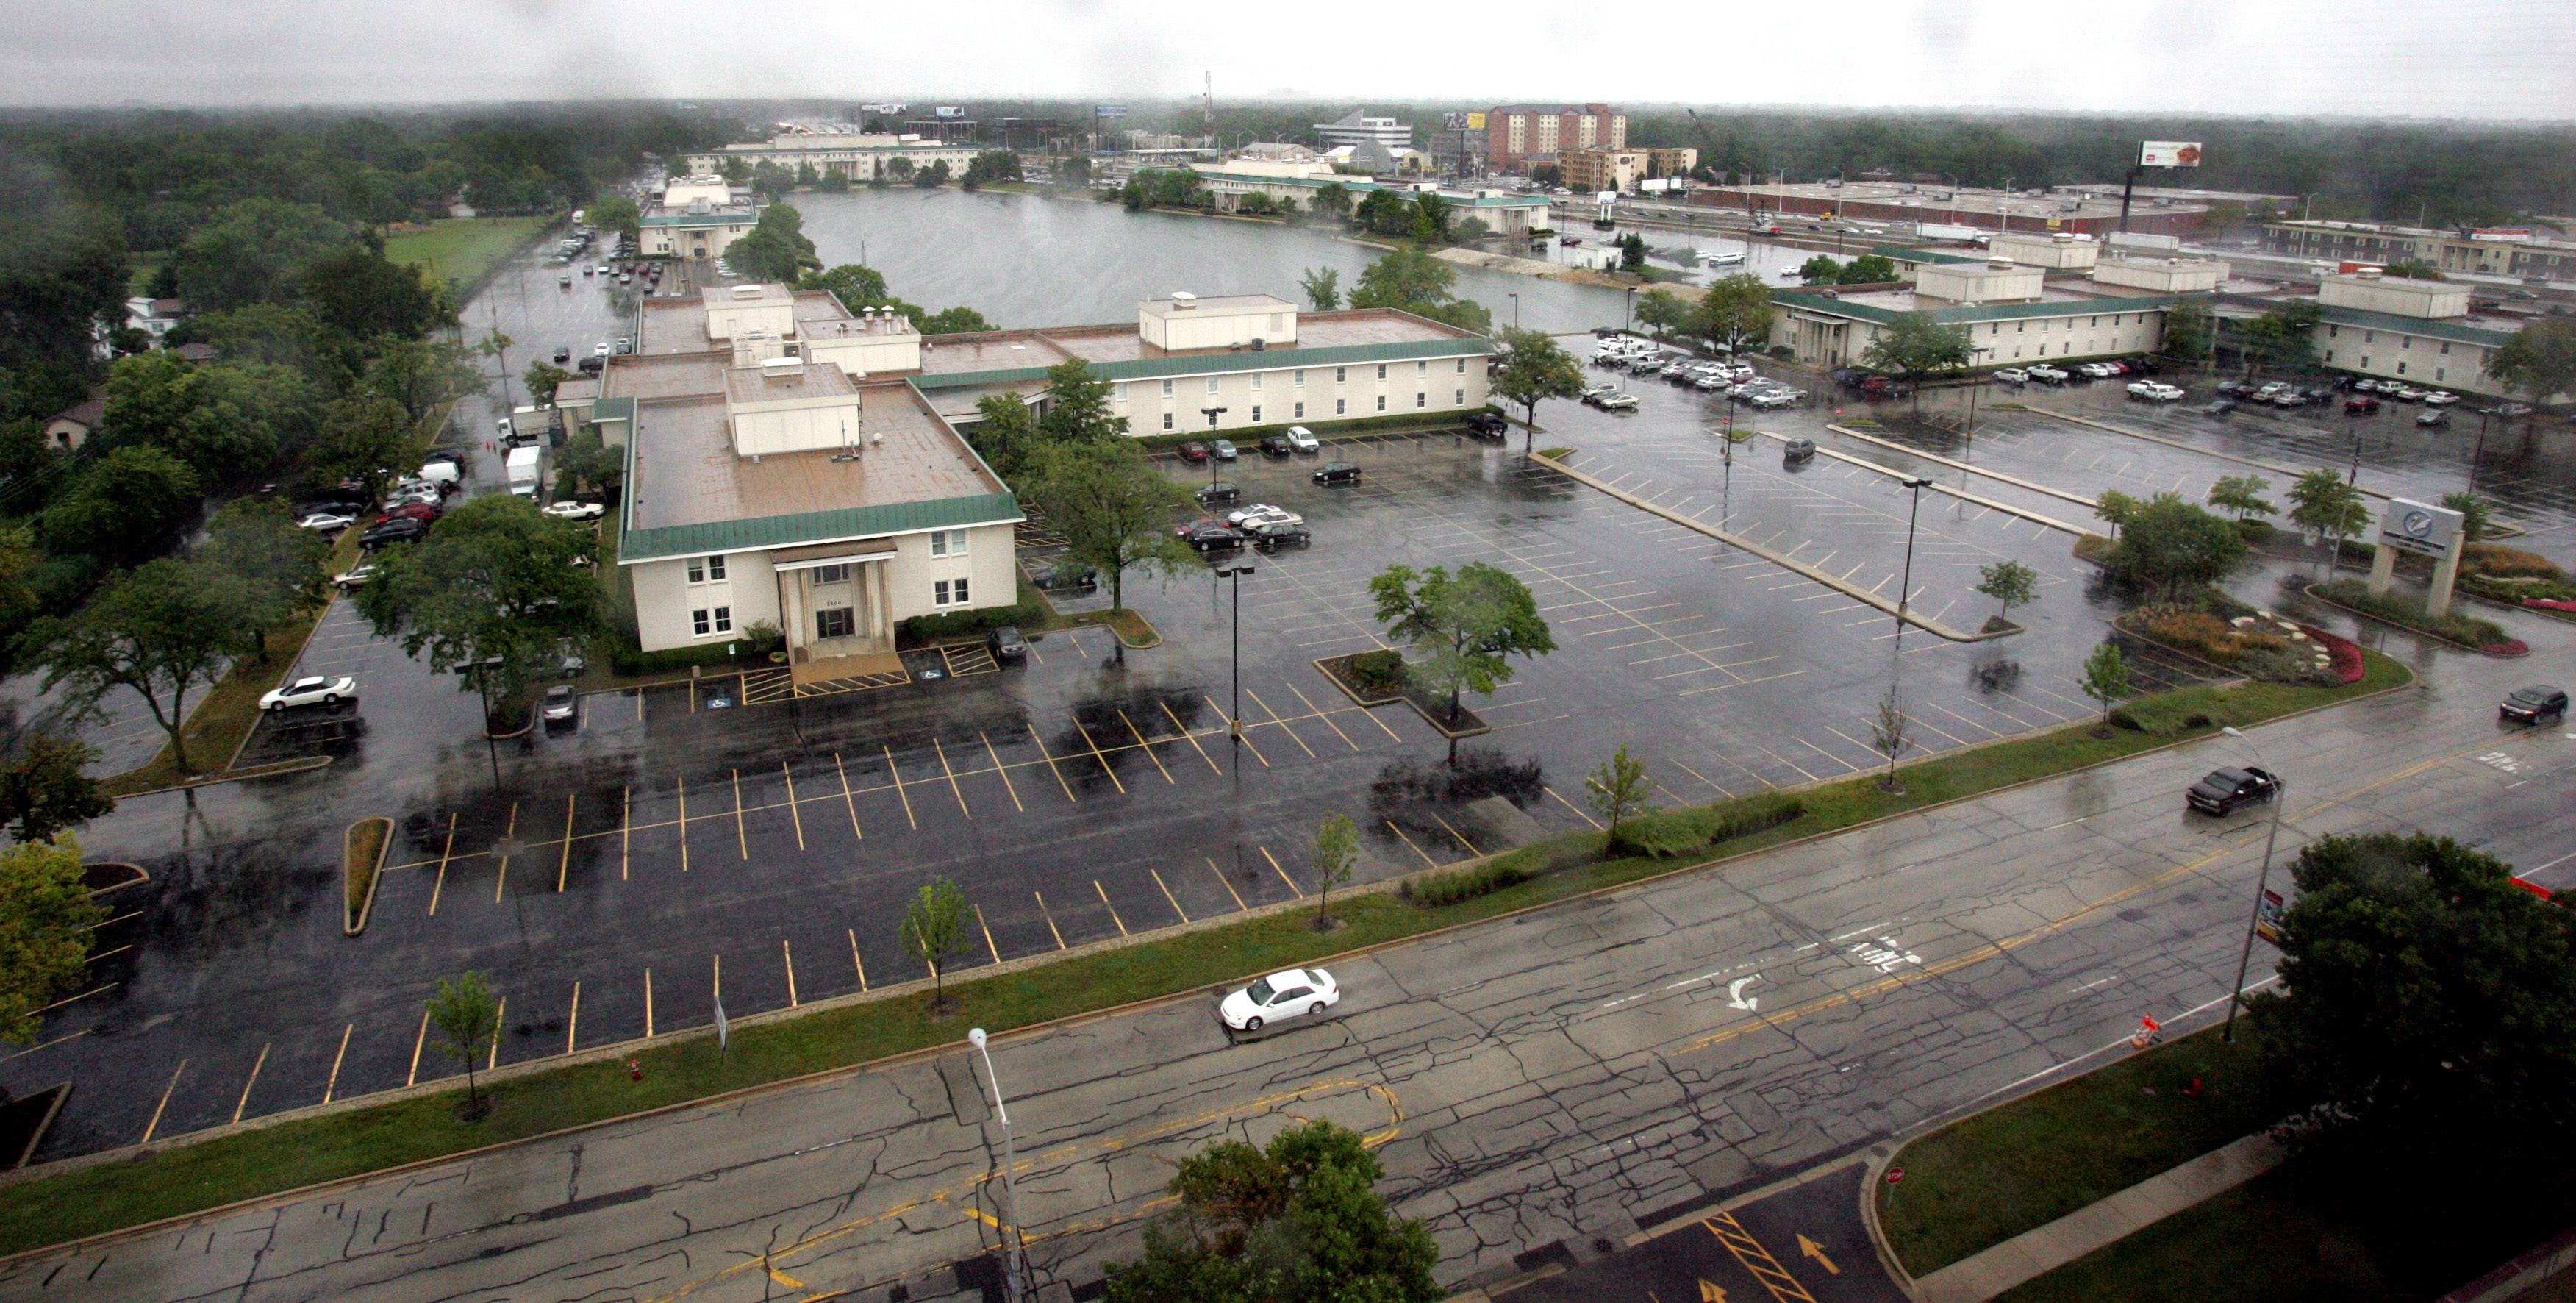 A 1990 agreement between O'Hare Lake Office Plaza and Des Plaines stipulated that the city could construct stormwater pipes into and out of Lake Peterson but also had to pay for any flood damages, should they occur